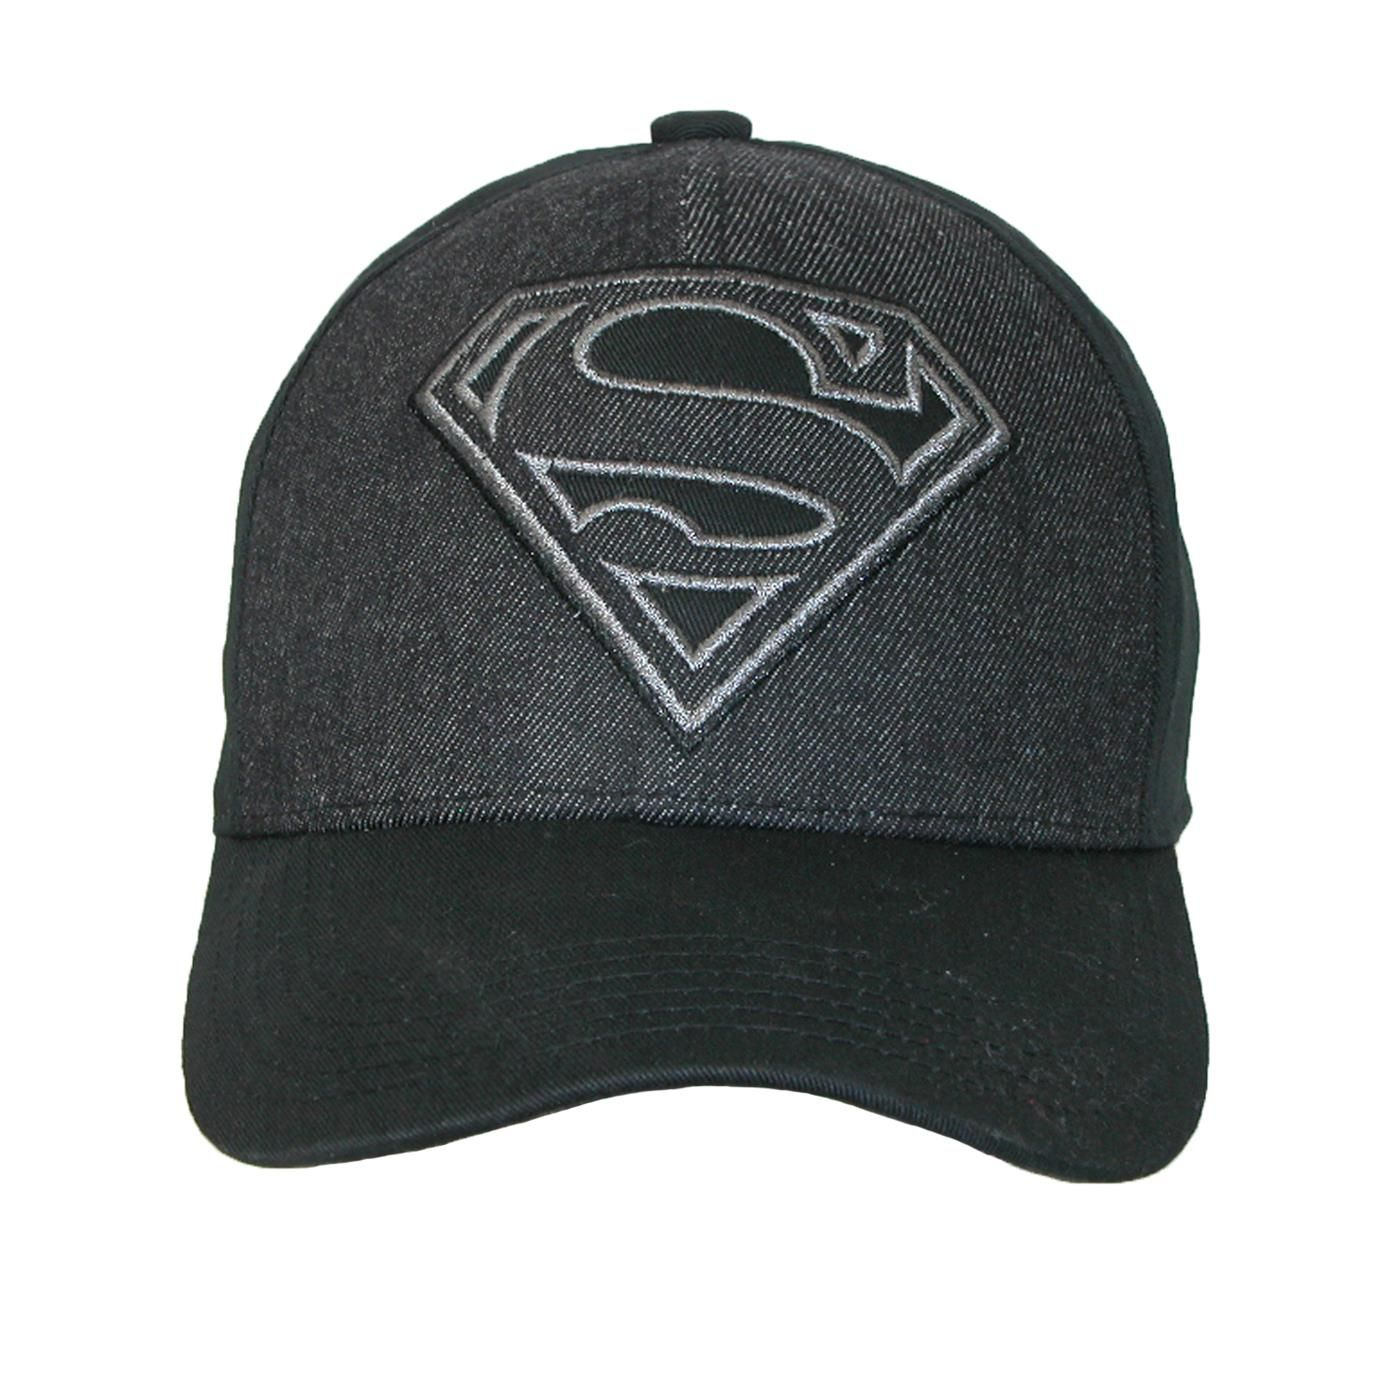 6b915d898b9e3 Black on black Superman hat is stylish for superhero lover in all of us.  Experience